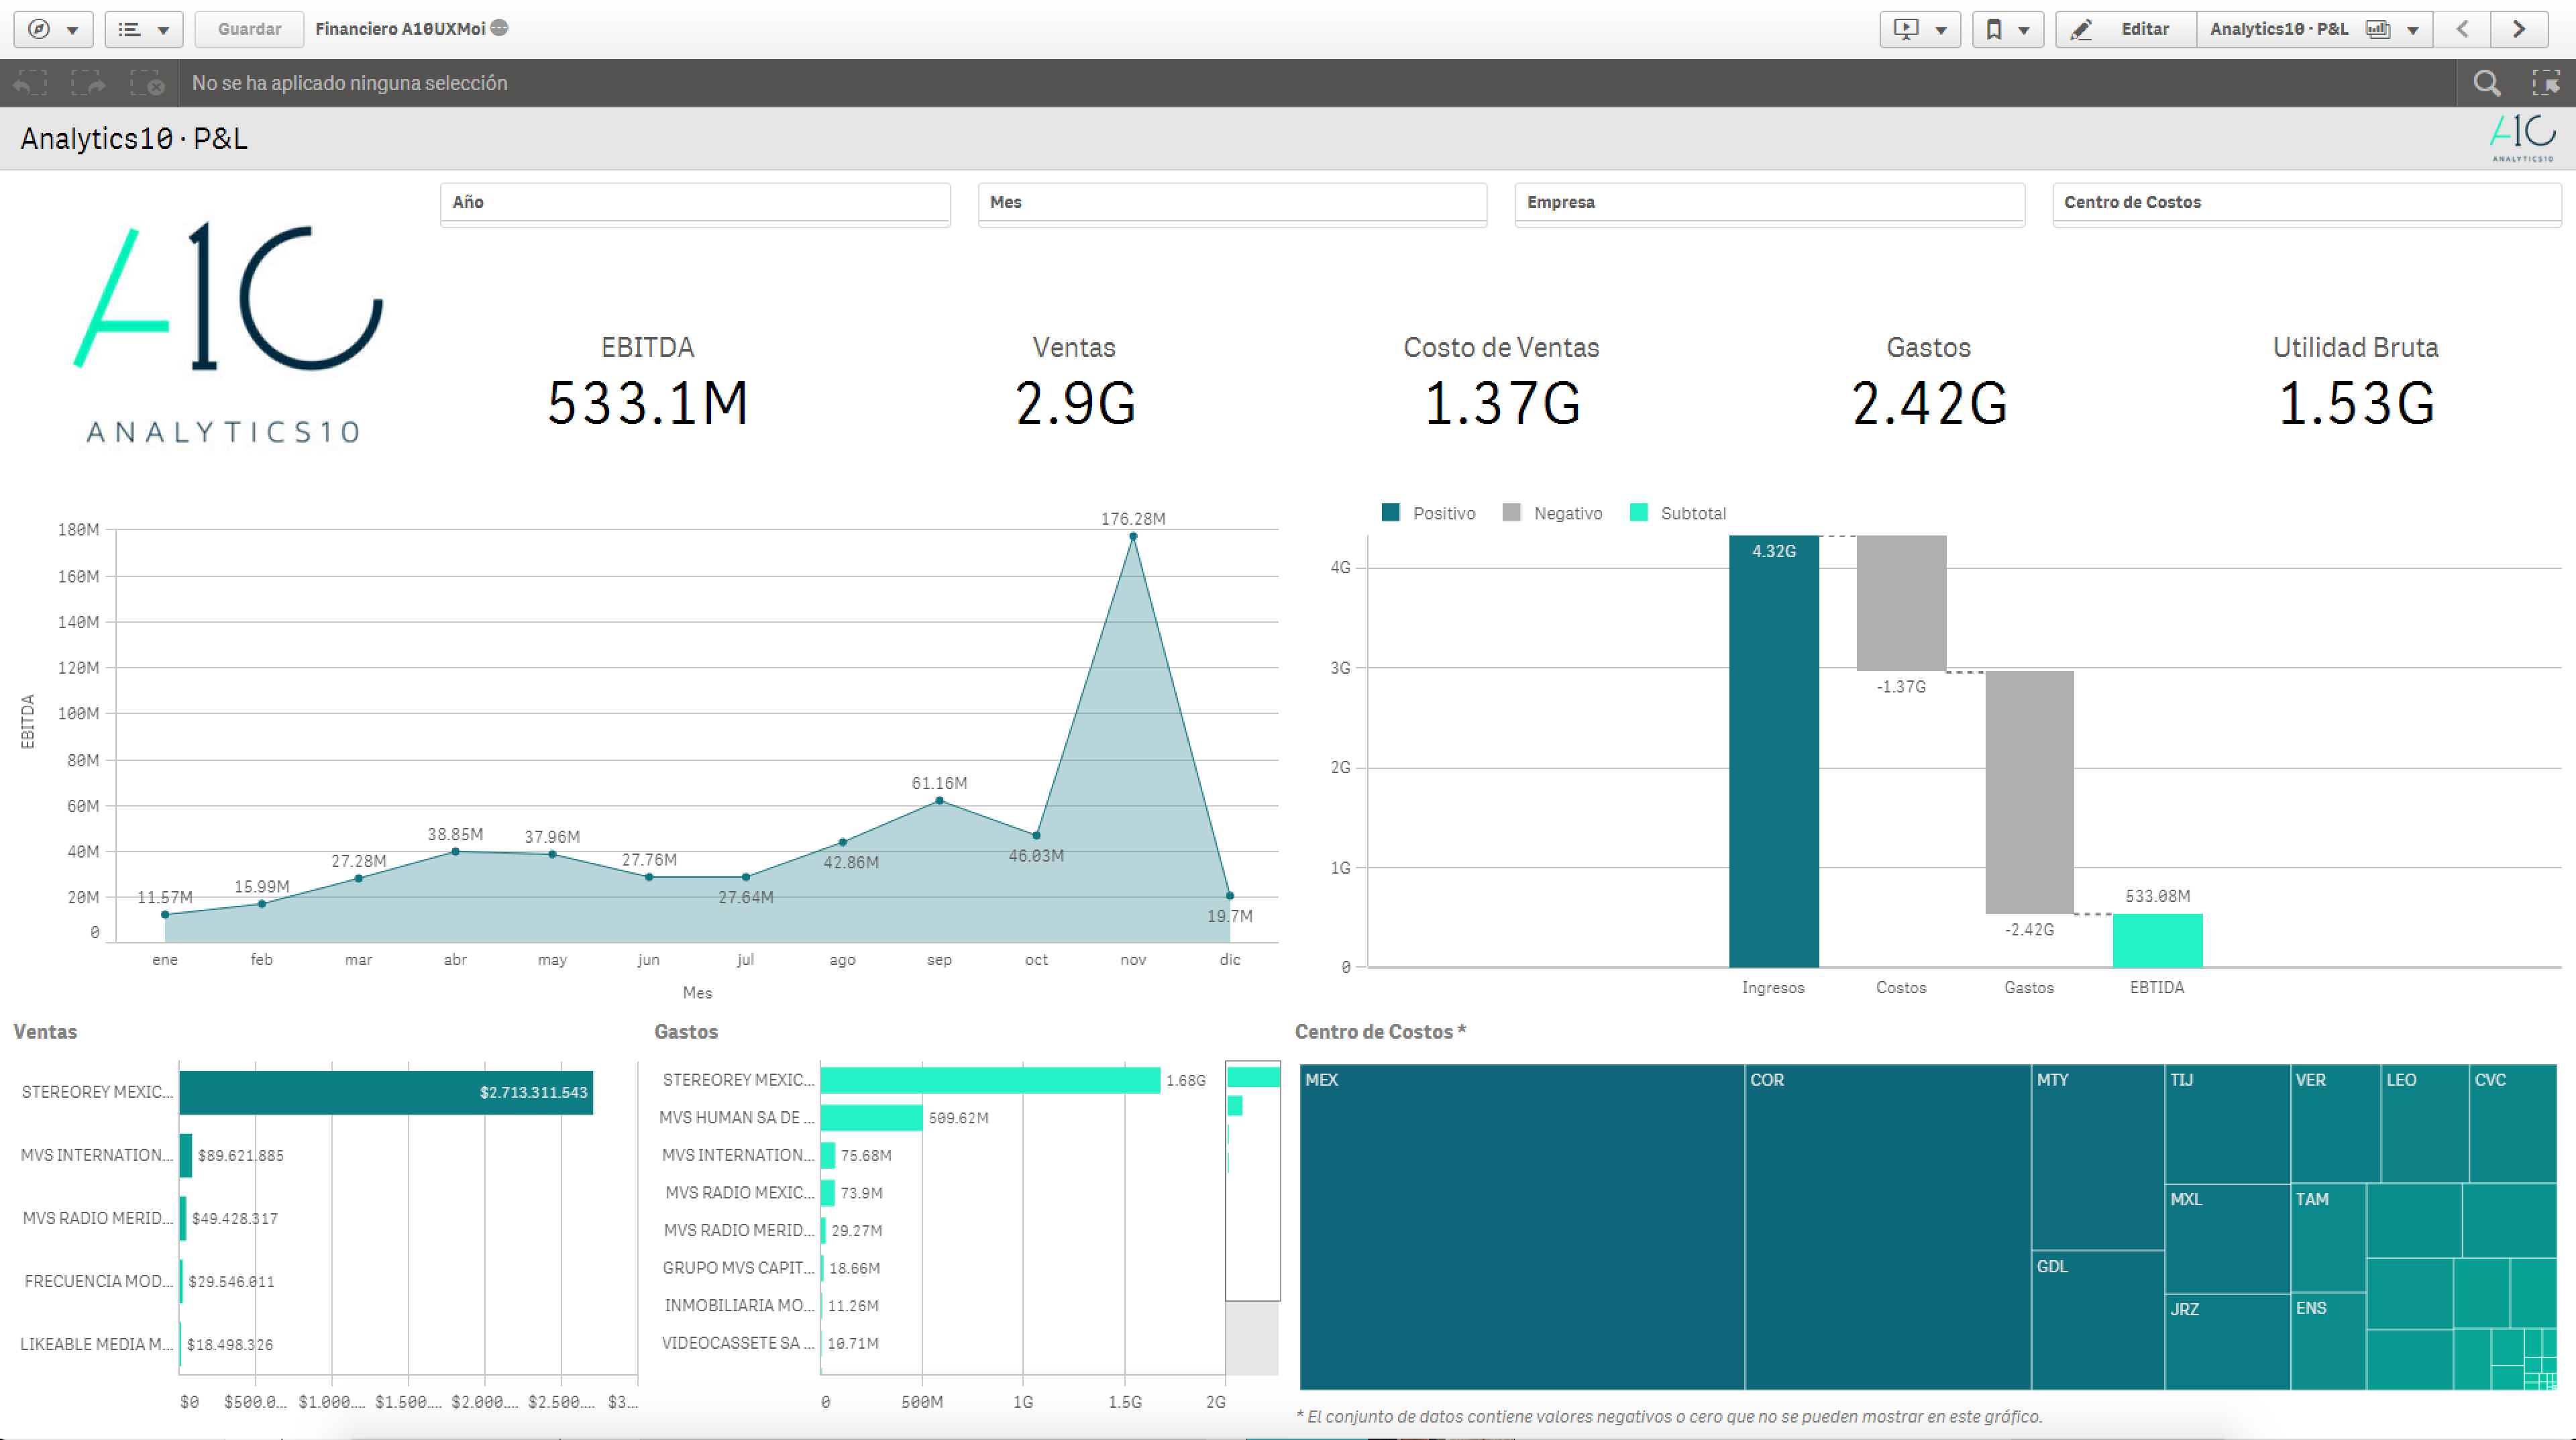 Financial Analytics - Dashboard